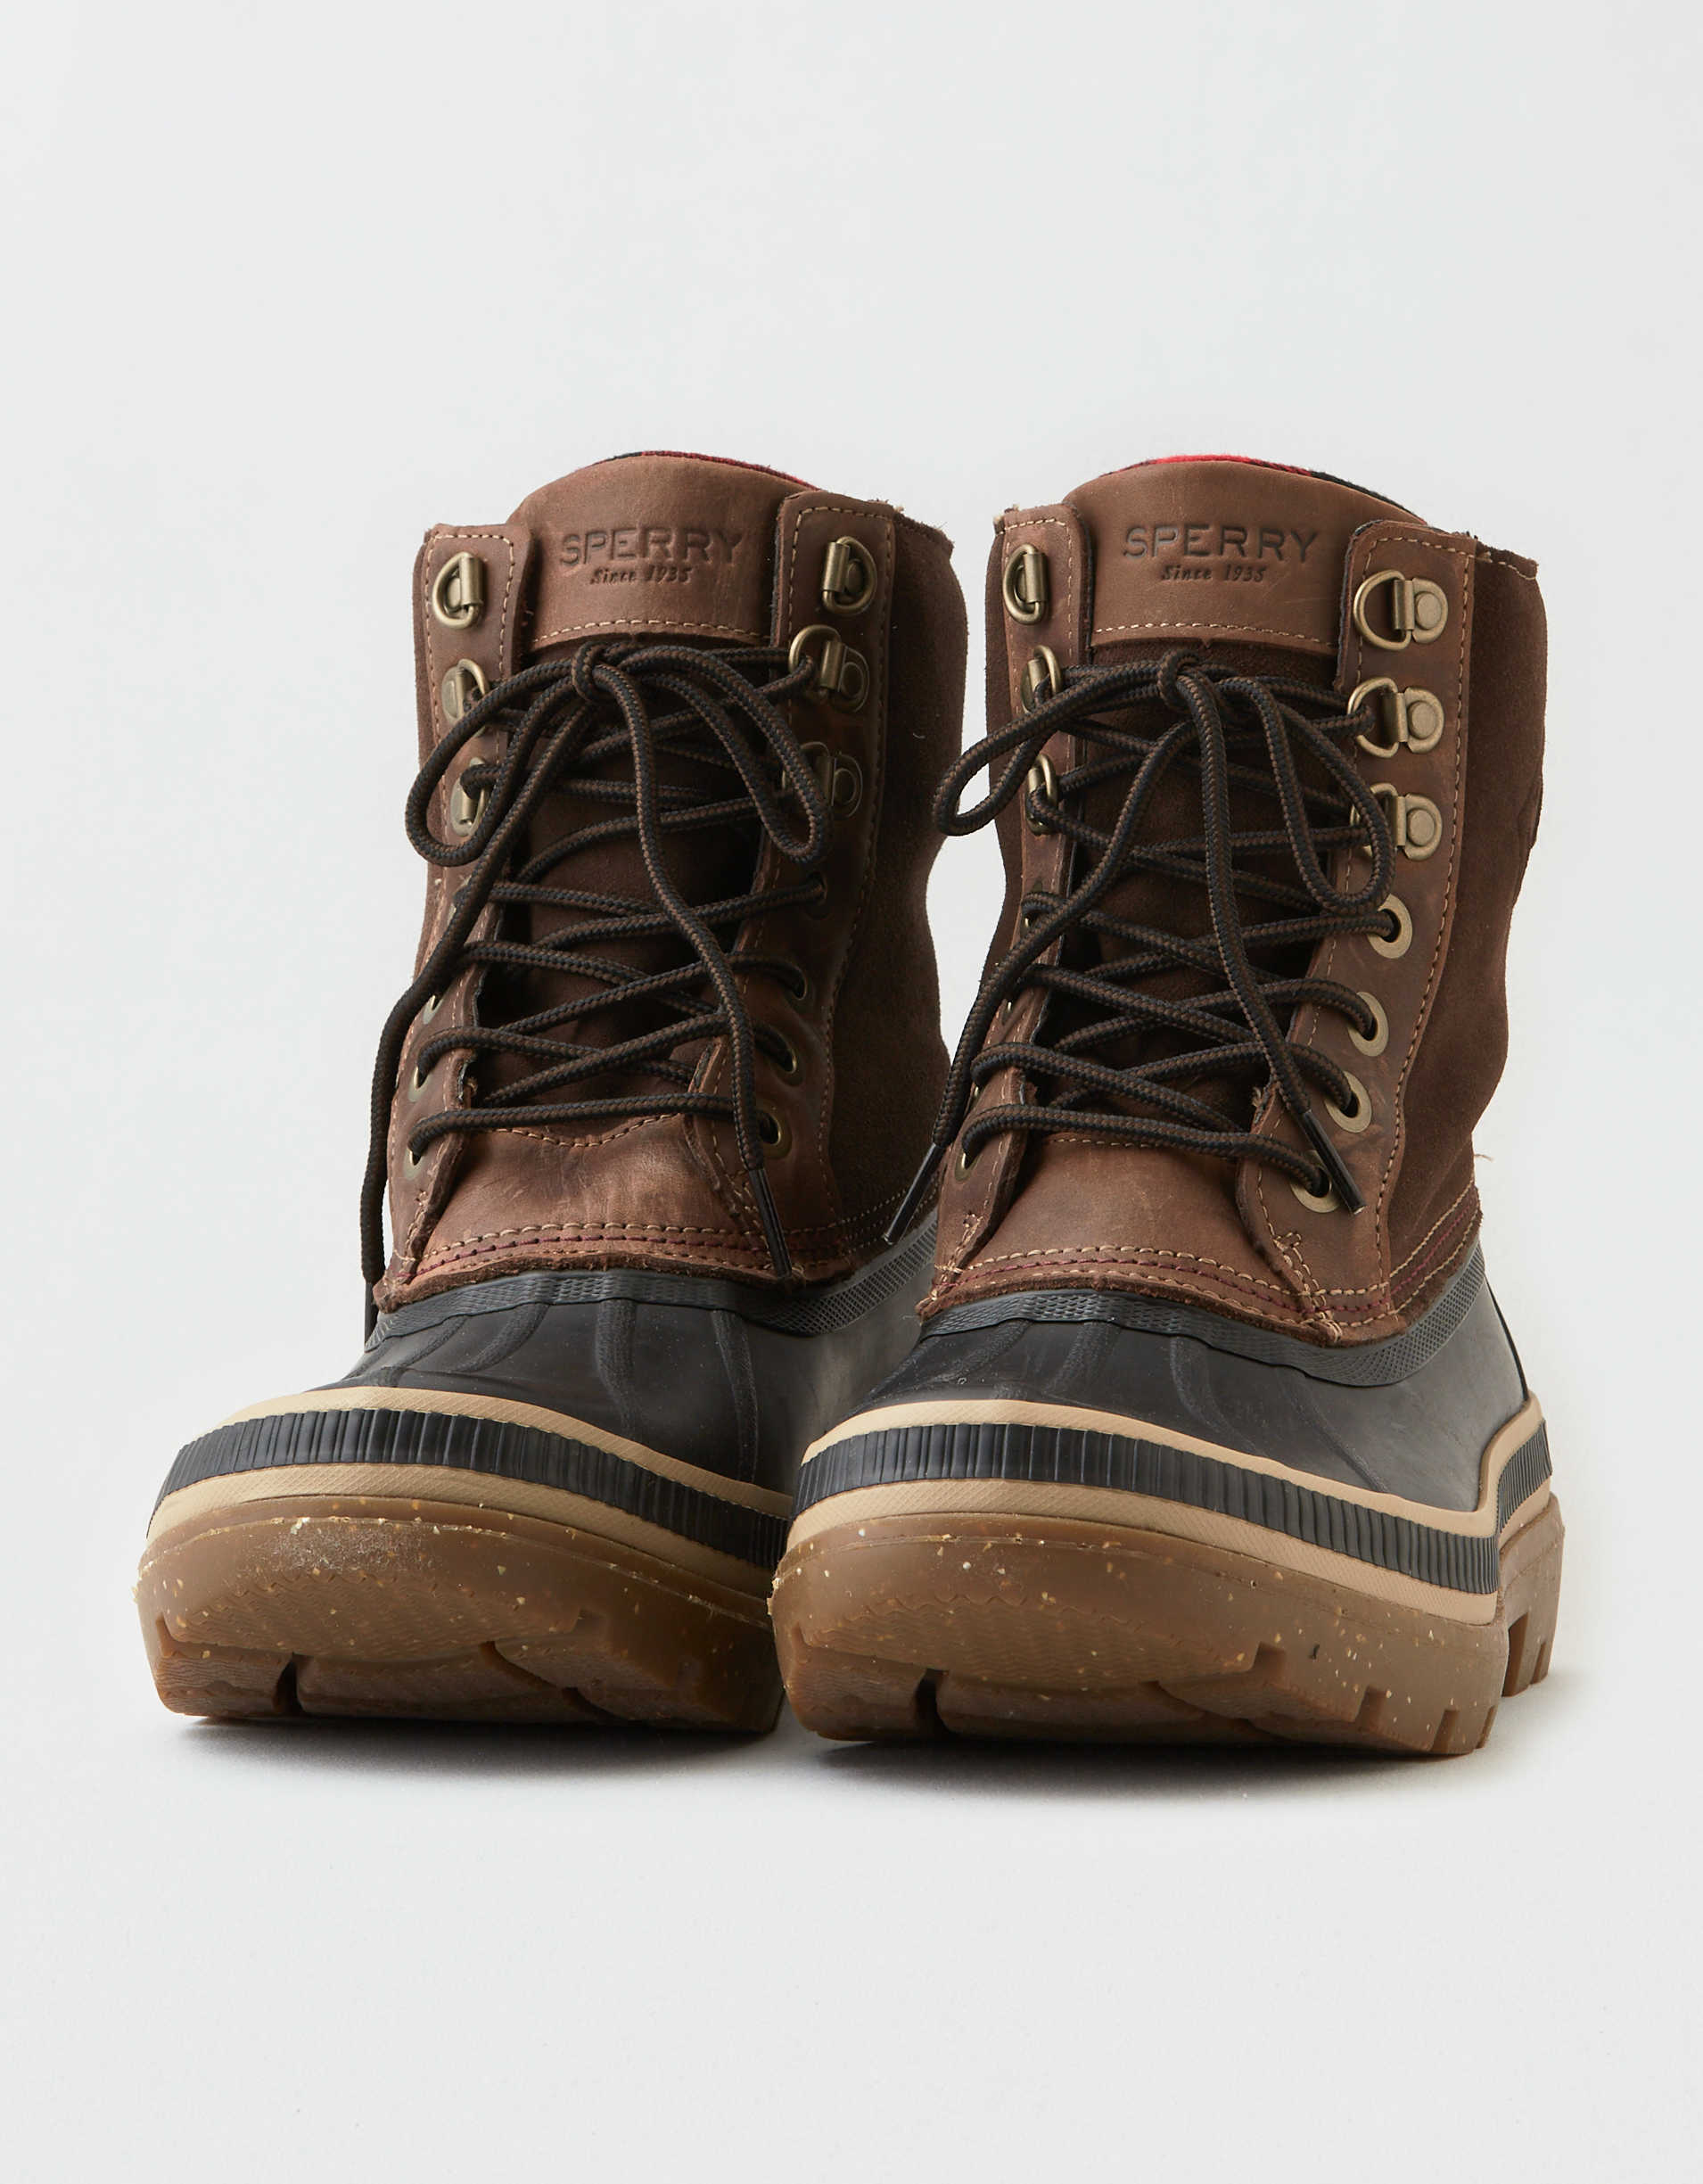 Sperry Ice Bay Boot